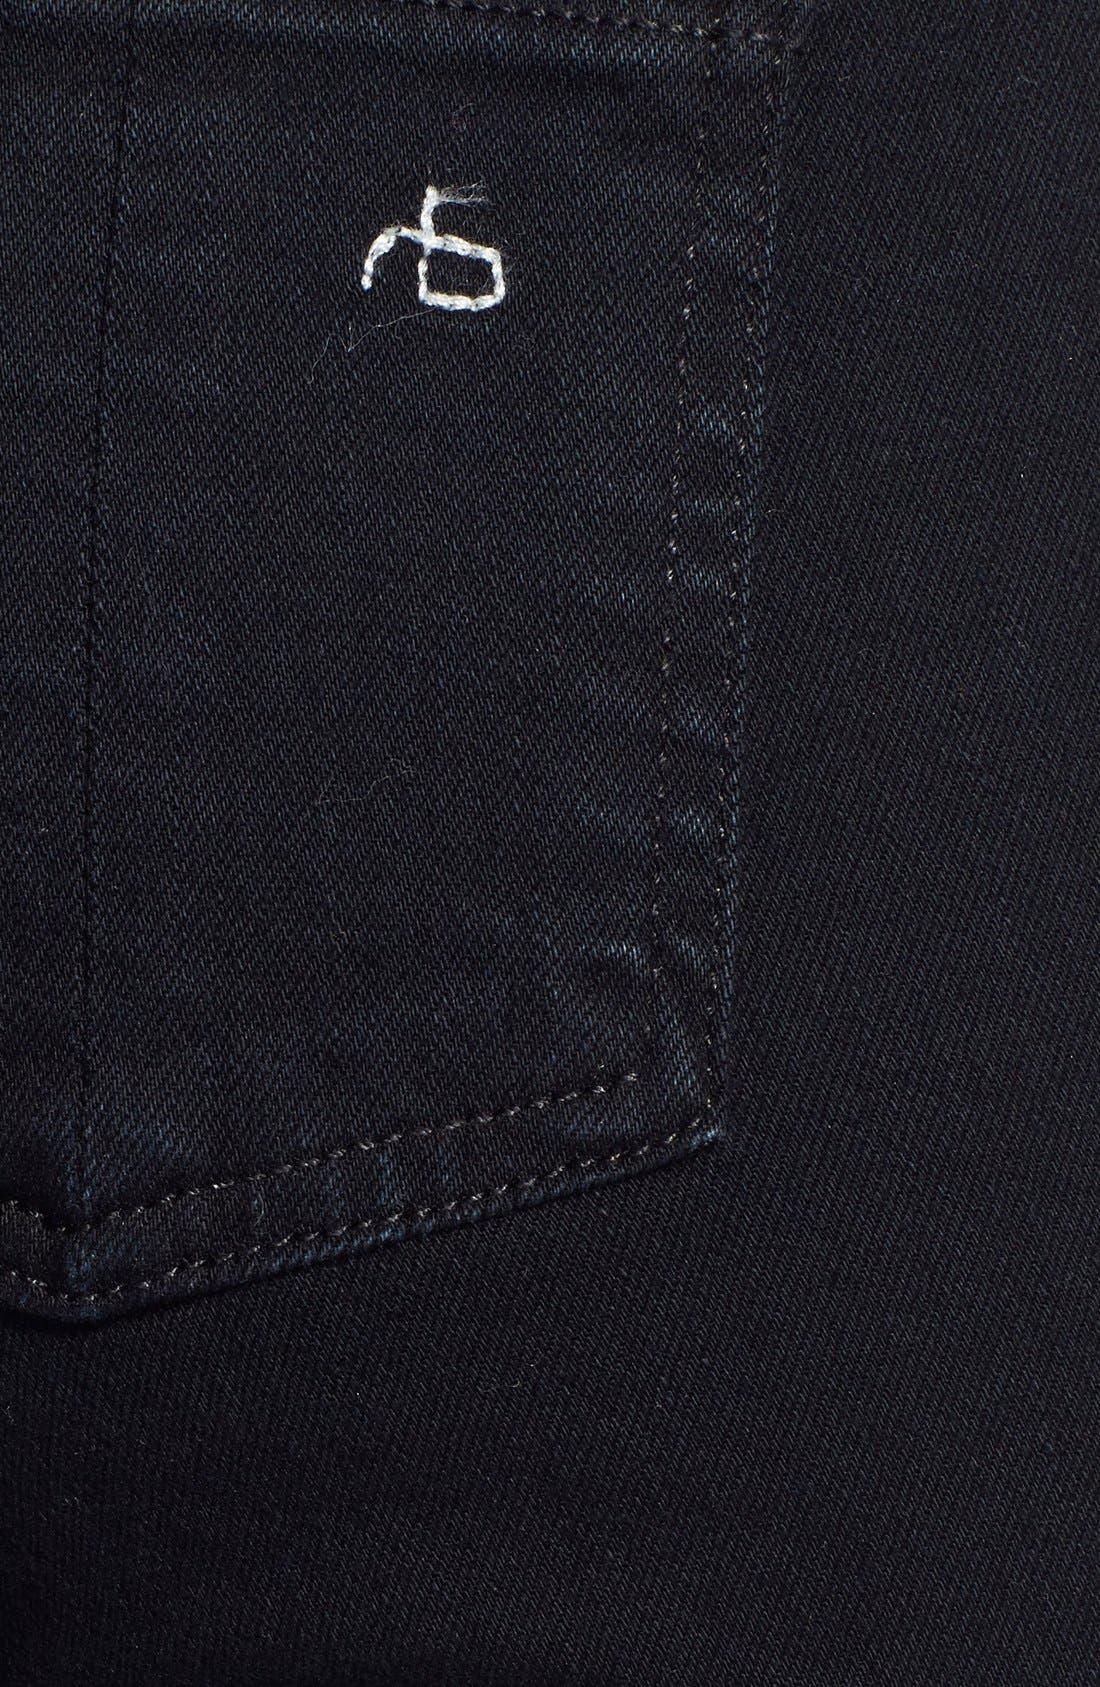 'The Skinny' Stretch Jeans,                             Alternate thumbnail 3, color,                             Coal